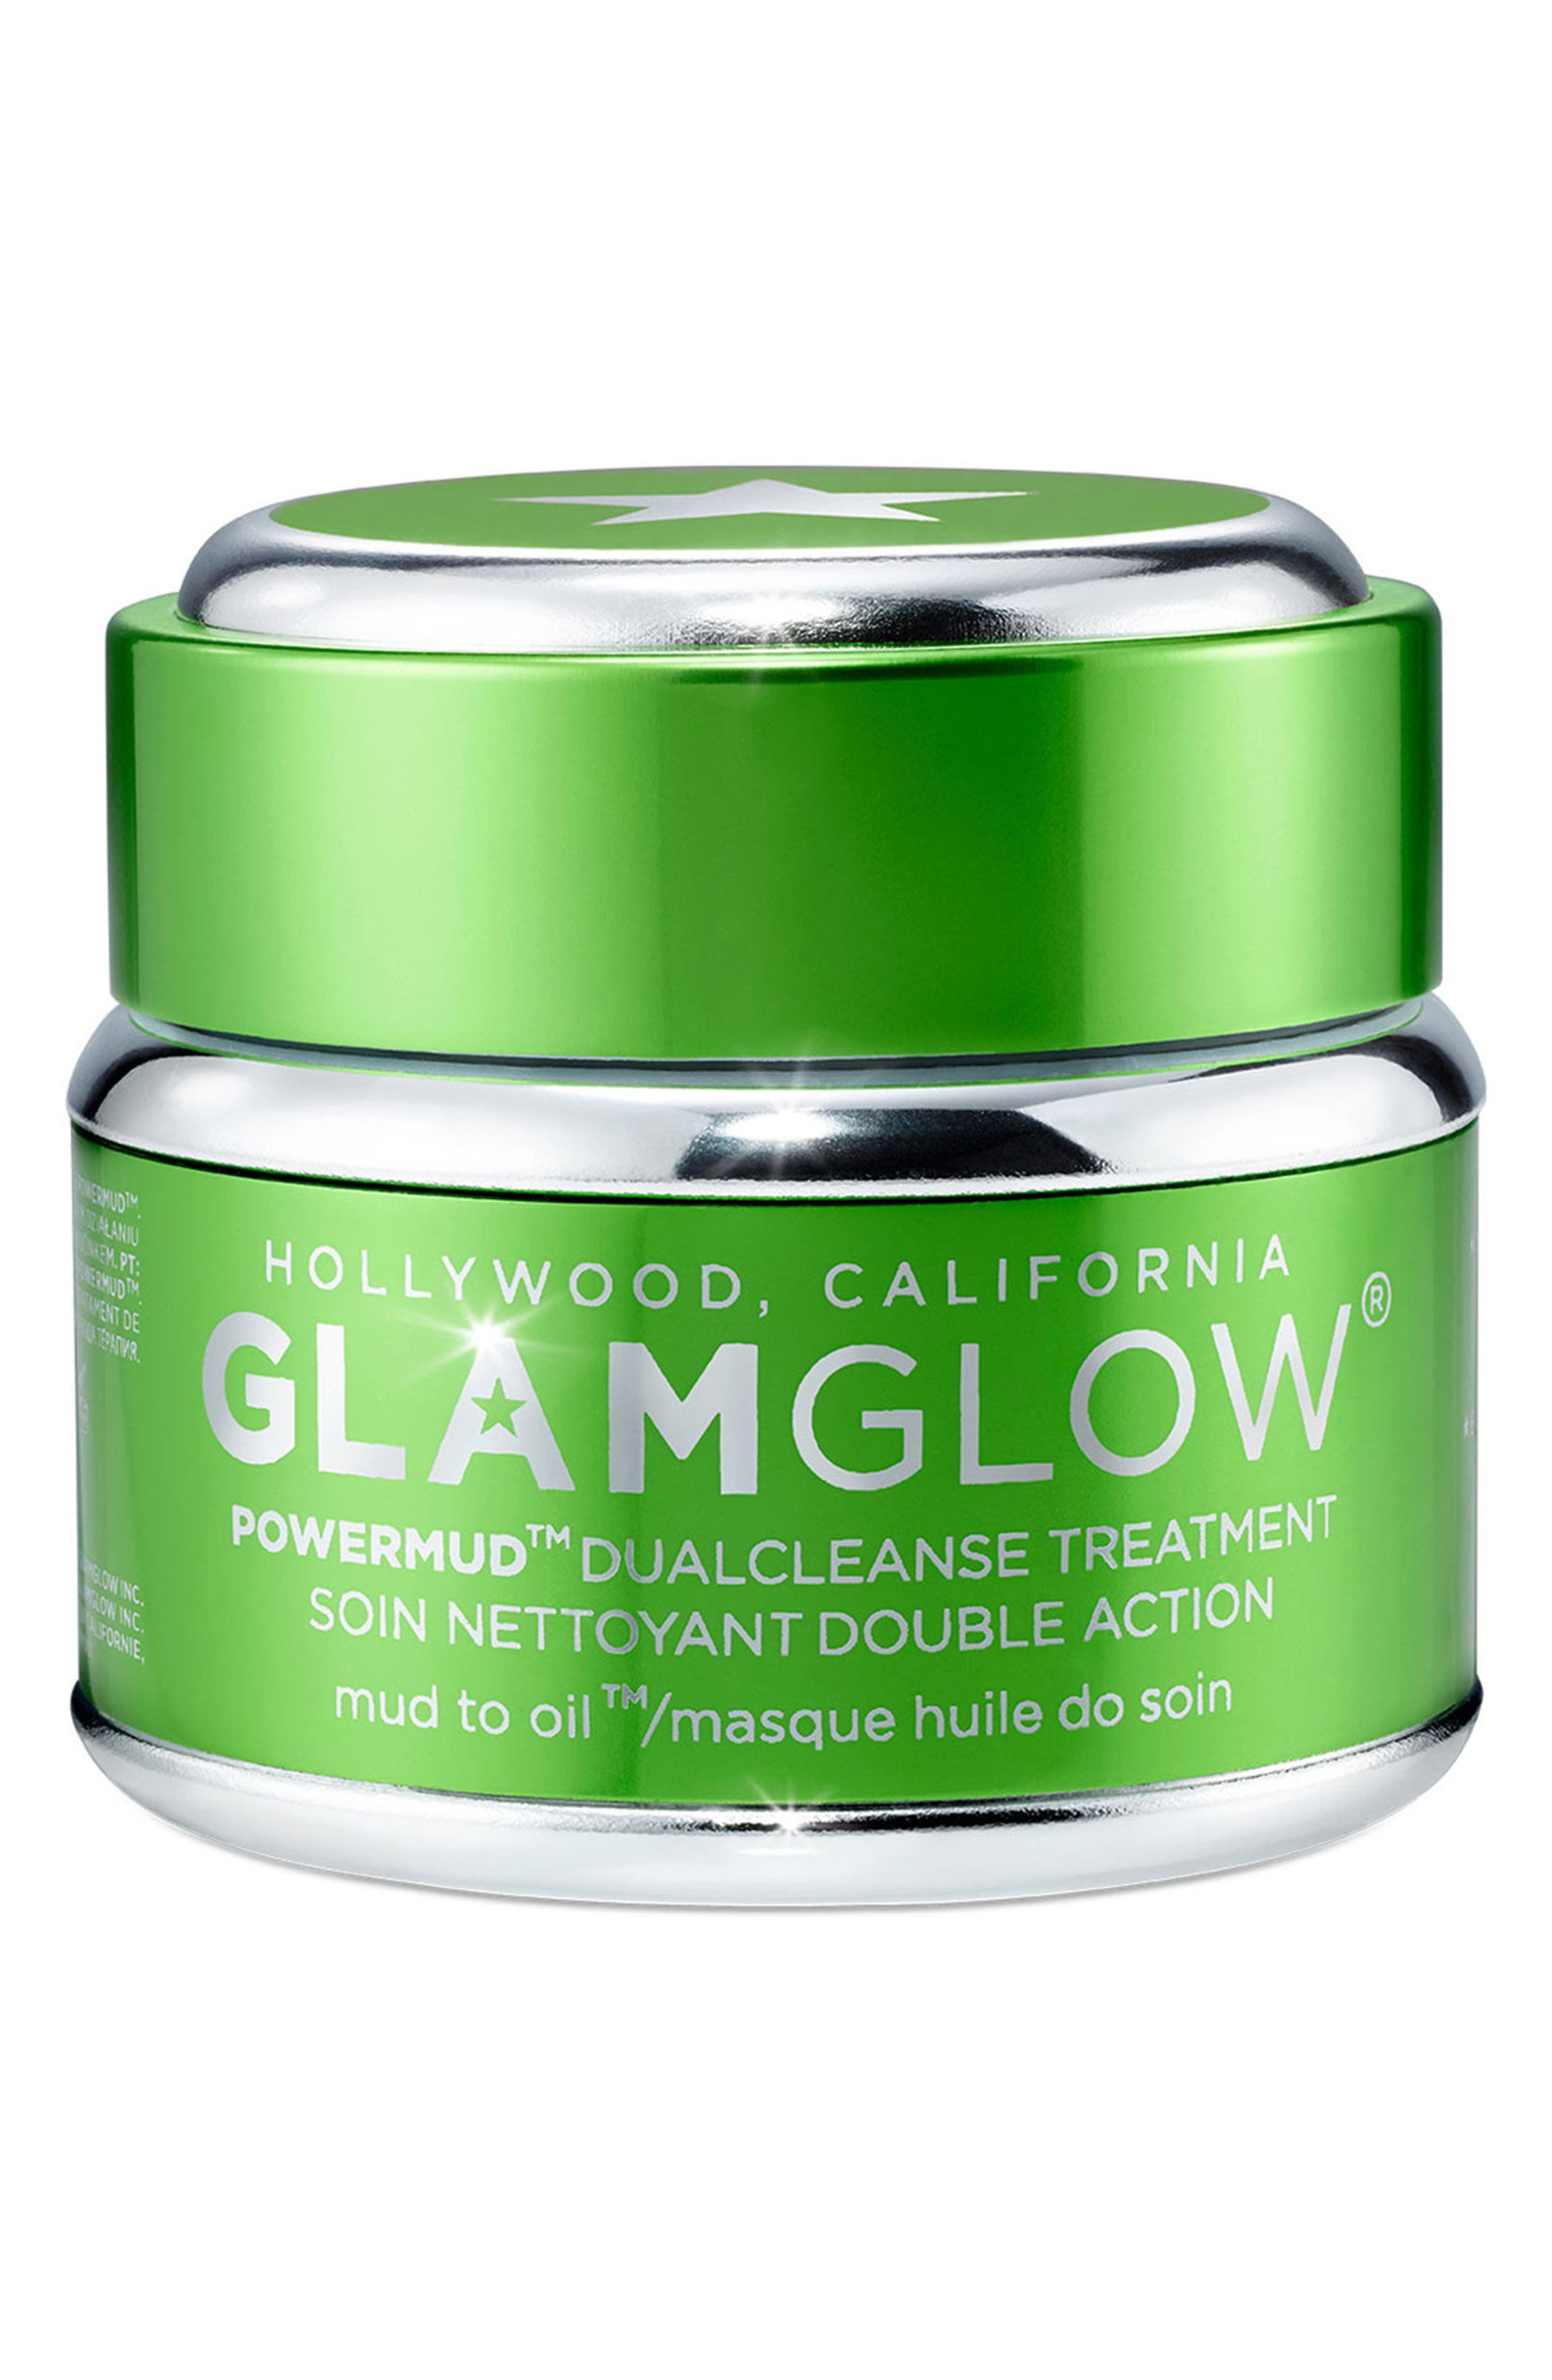 Alternate Image 1 Selected - GLAMGLOW® POWERMUD™ Dual Cleanse Treatment